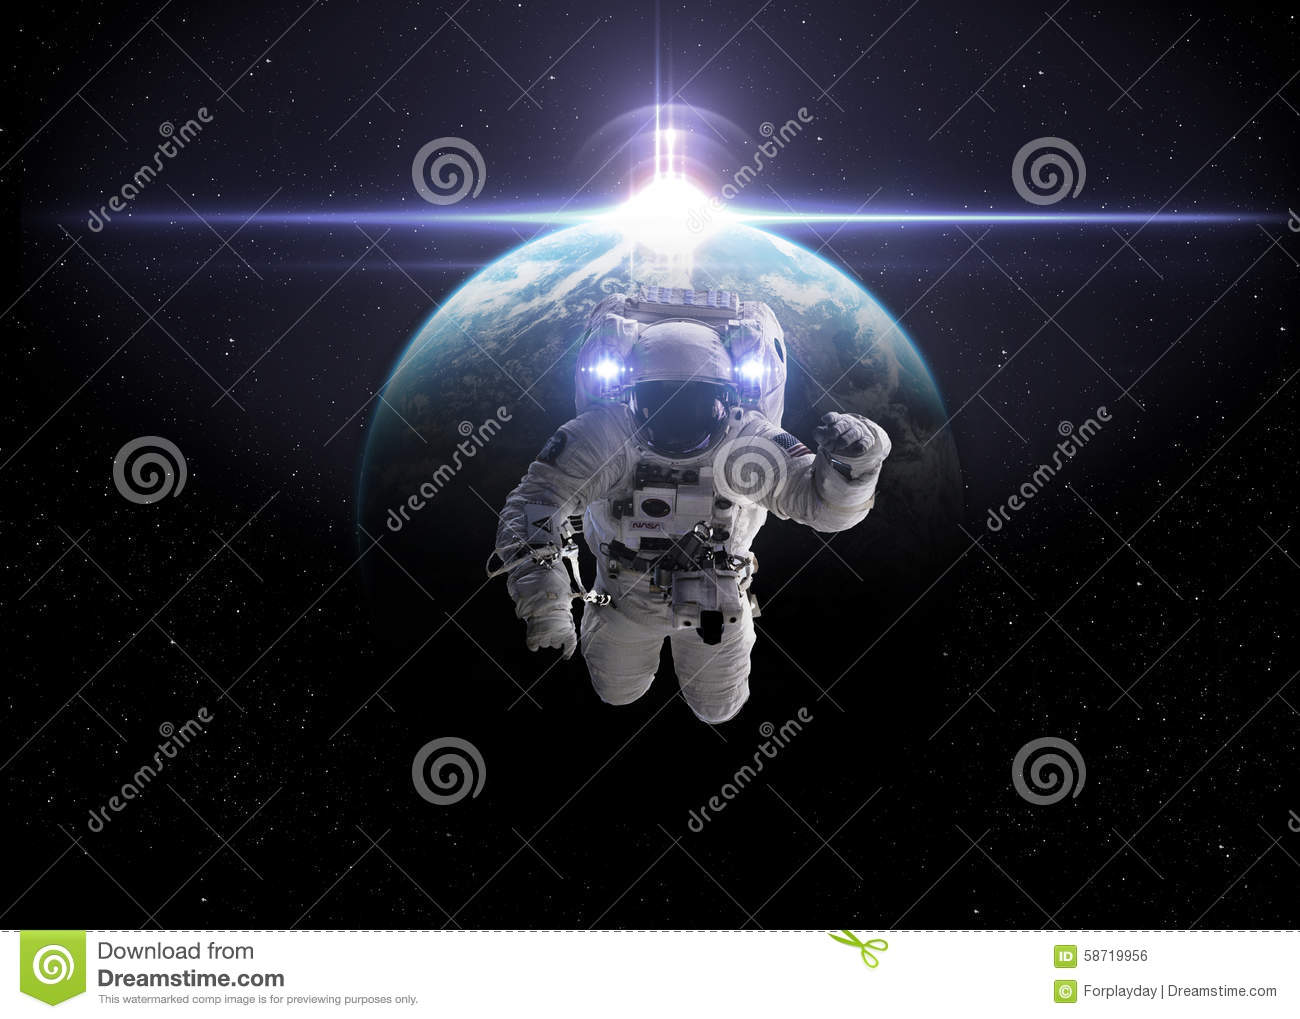 Astronaut in outer space stock photo. Image of cosmonaut ...